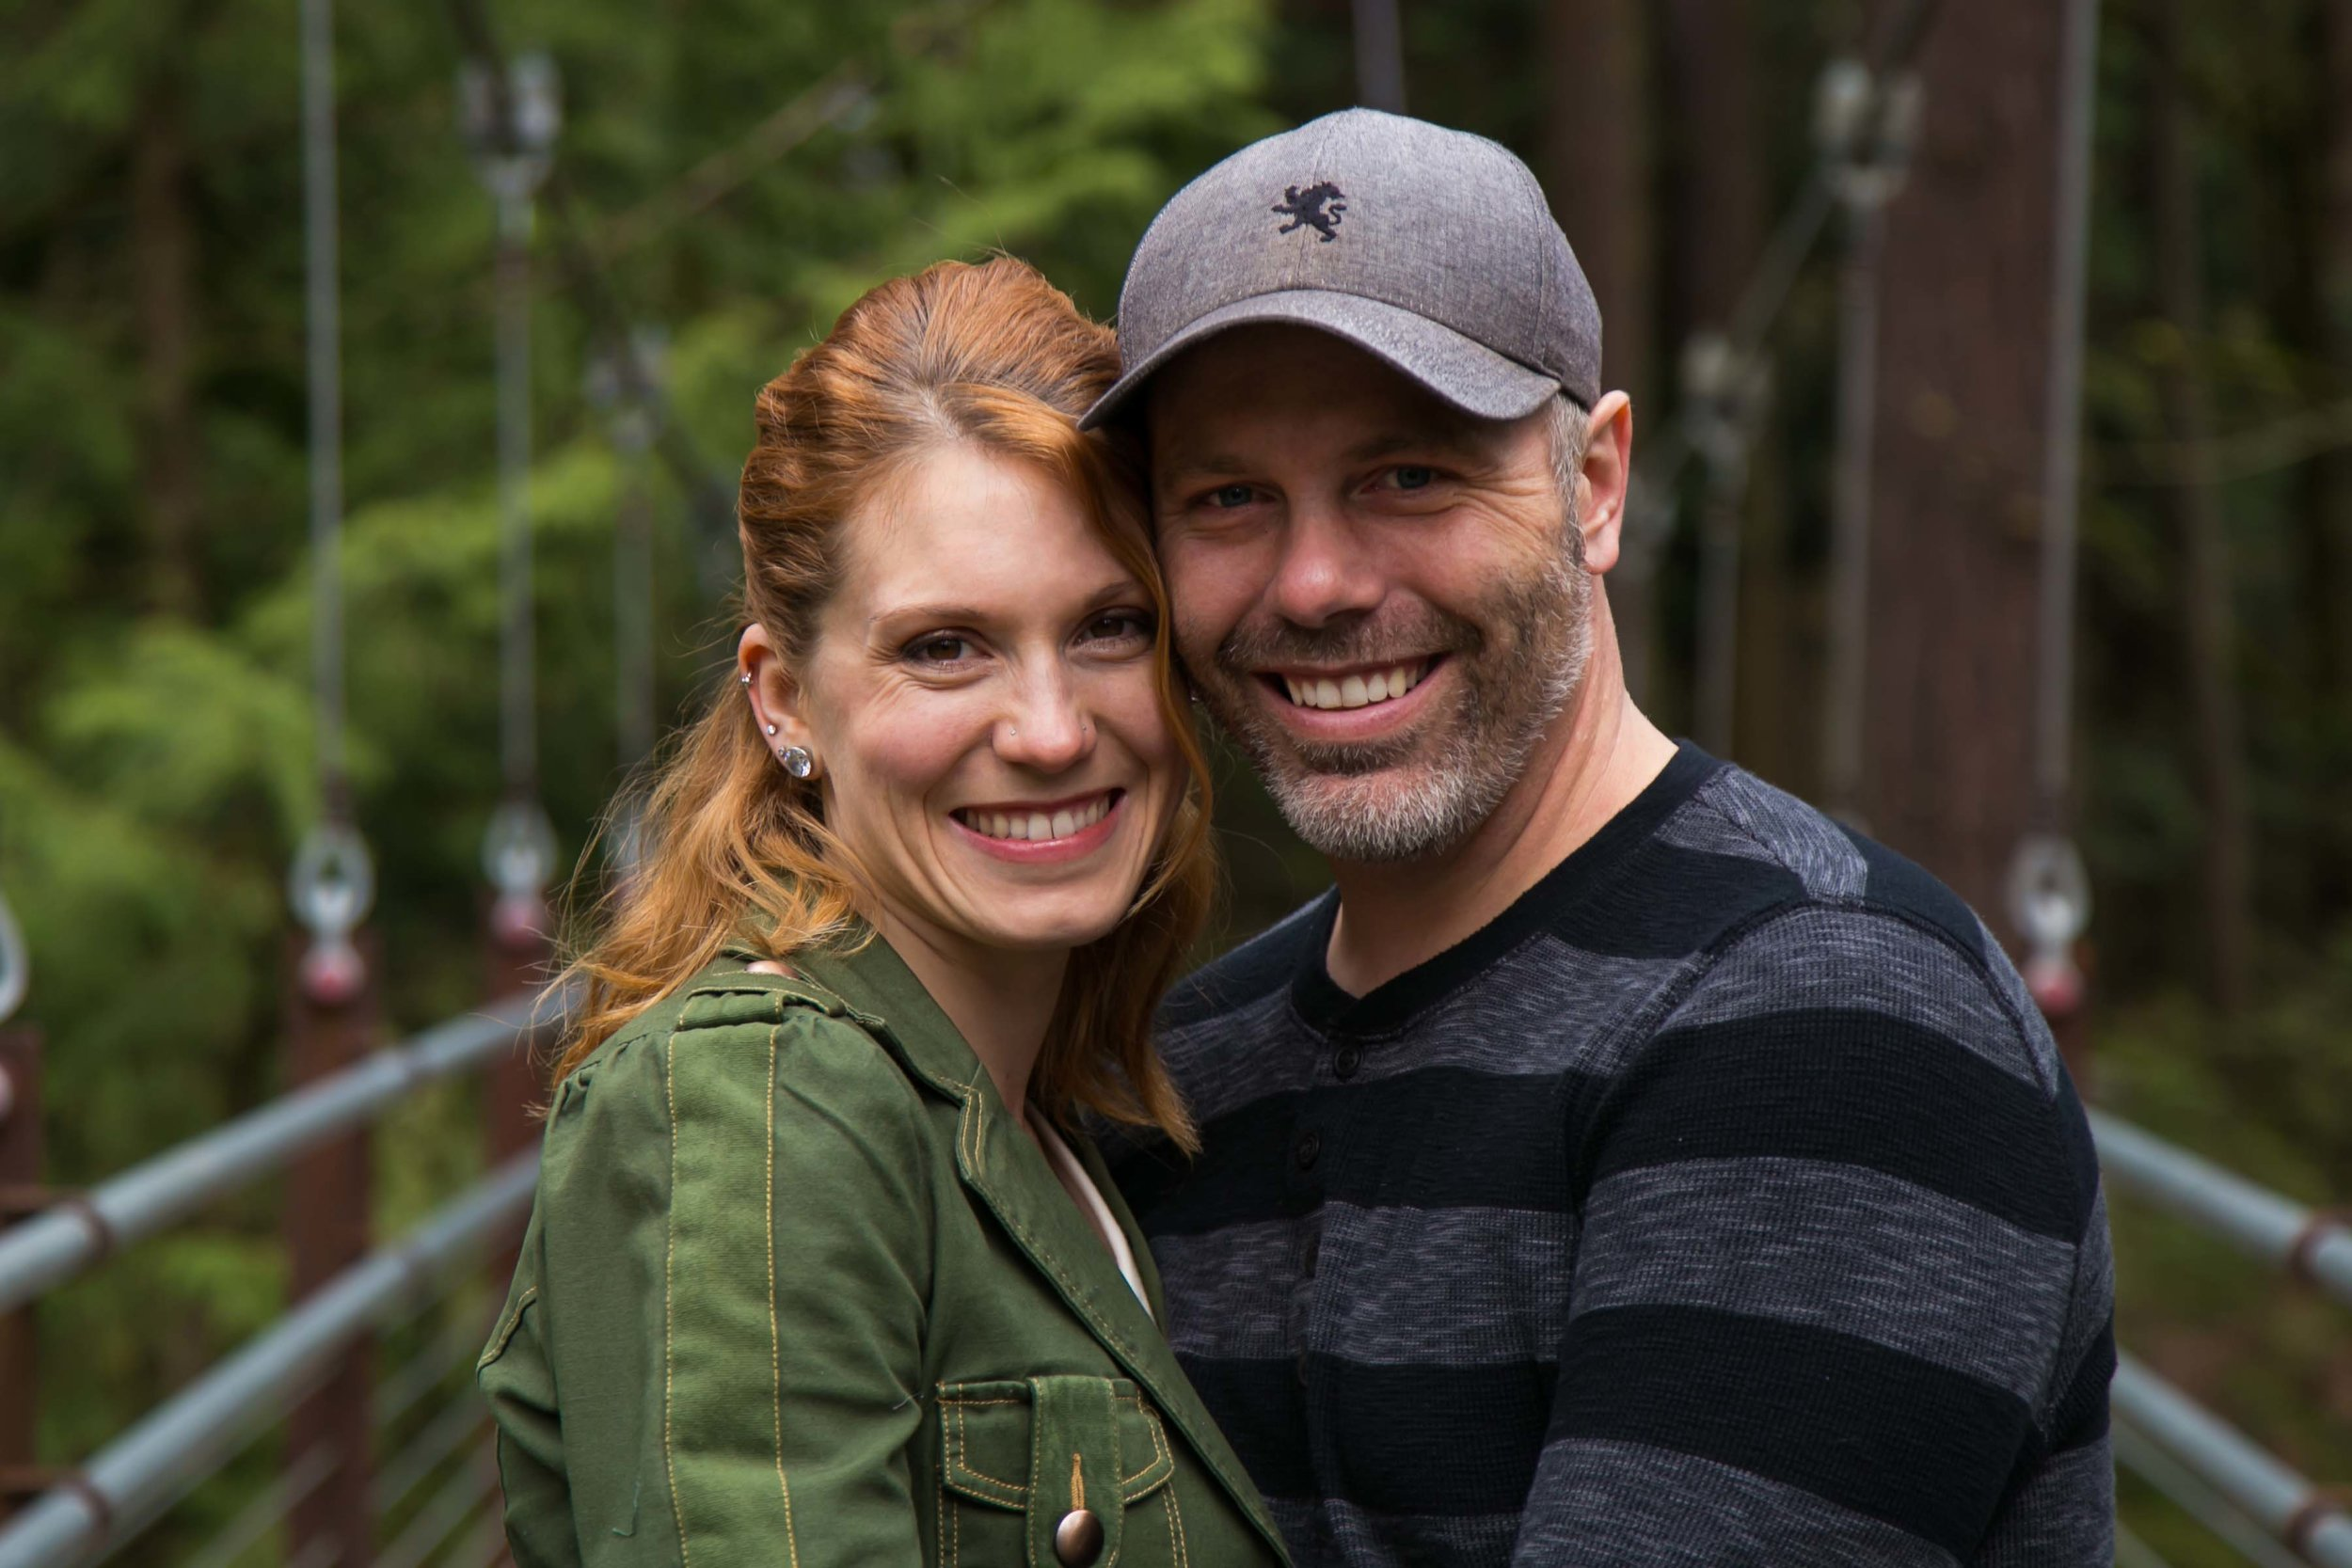 Seattle Family Photographer | G. Lin Photography | Couple standing on bridge and smiling at camera